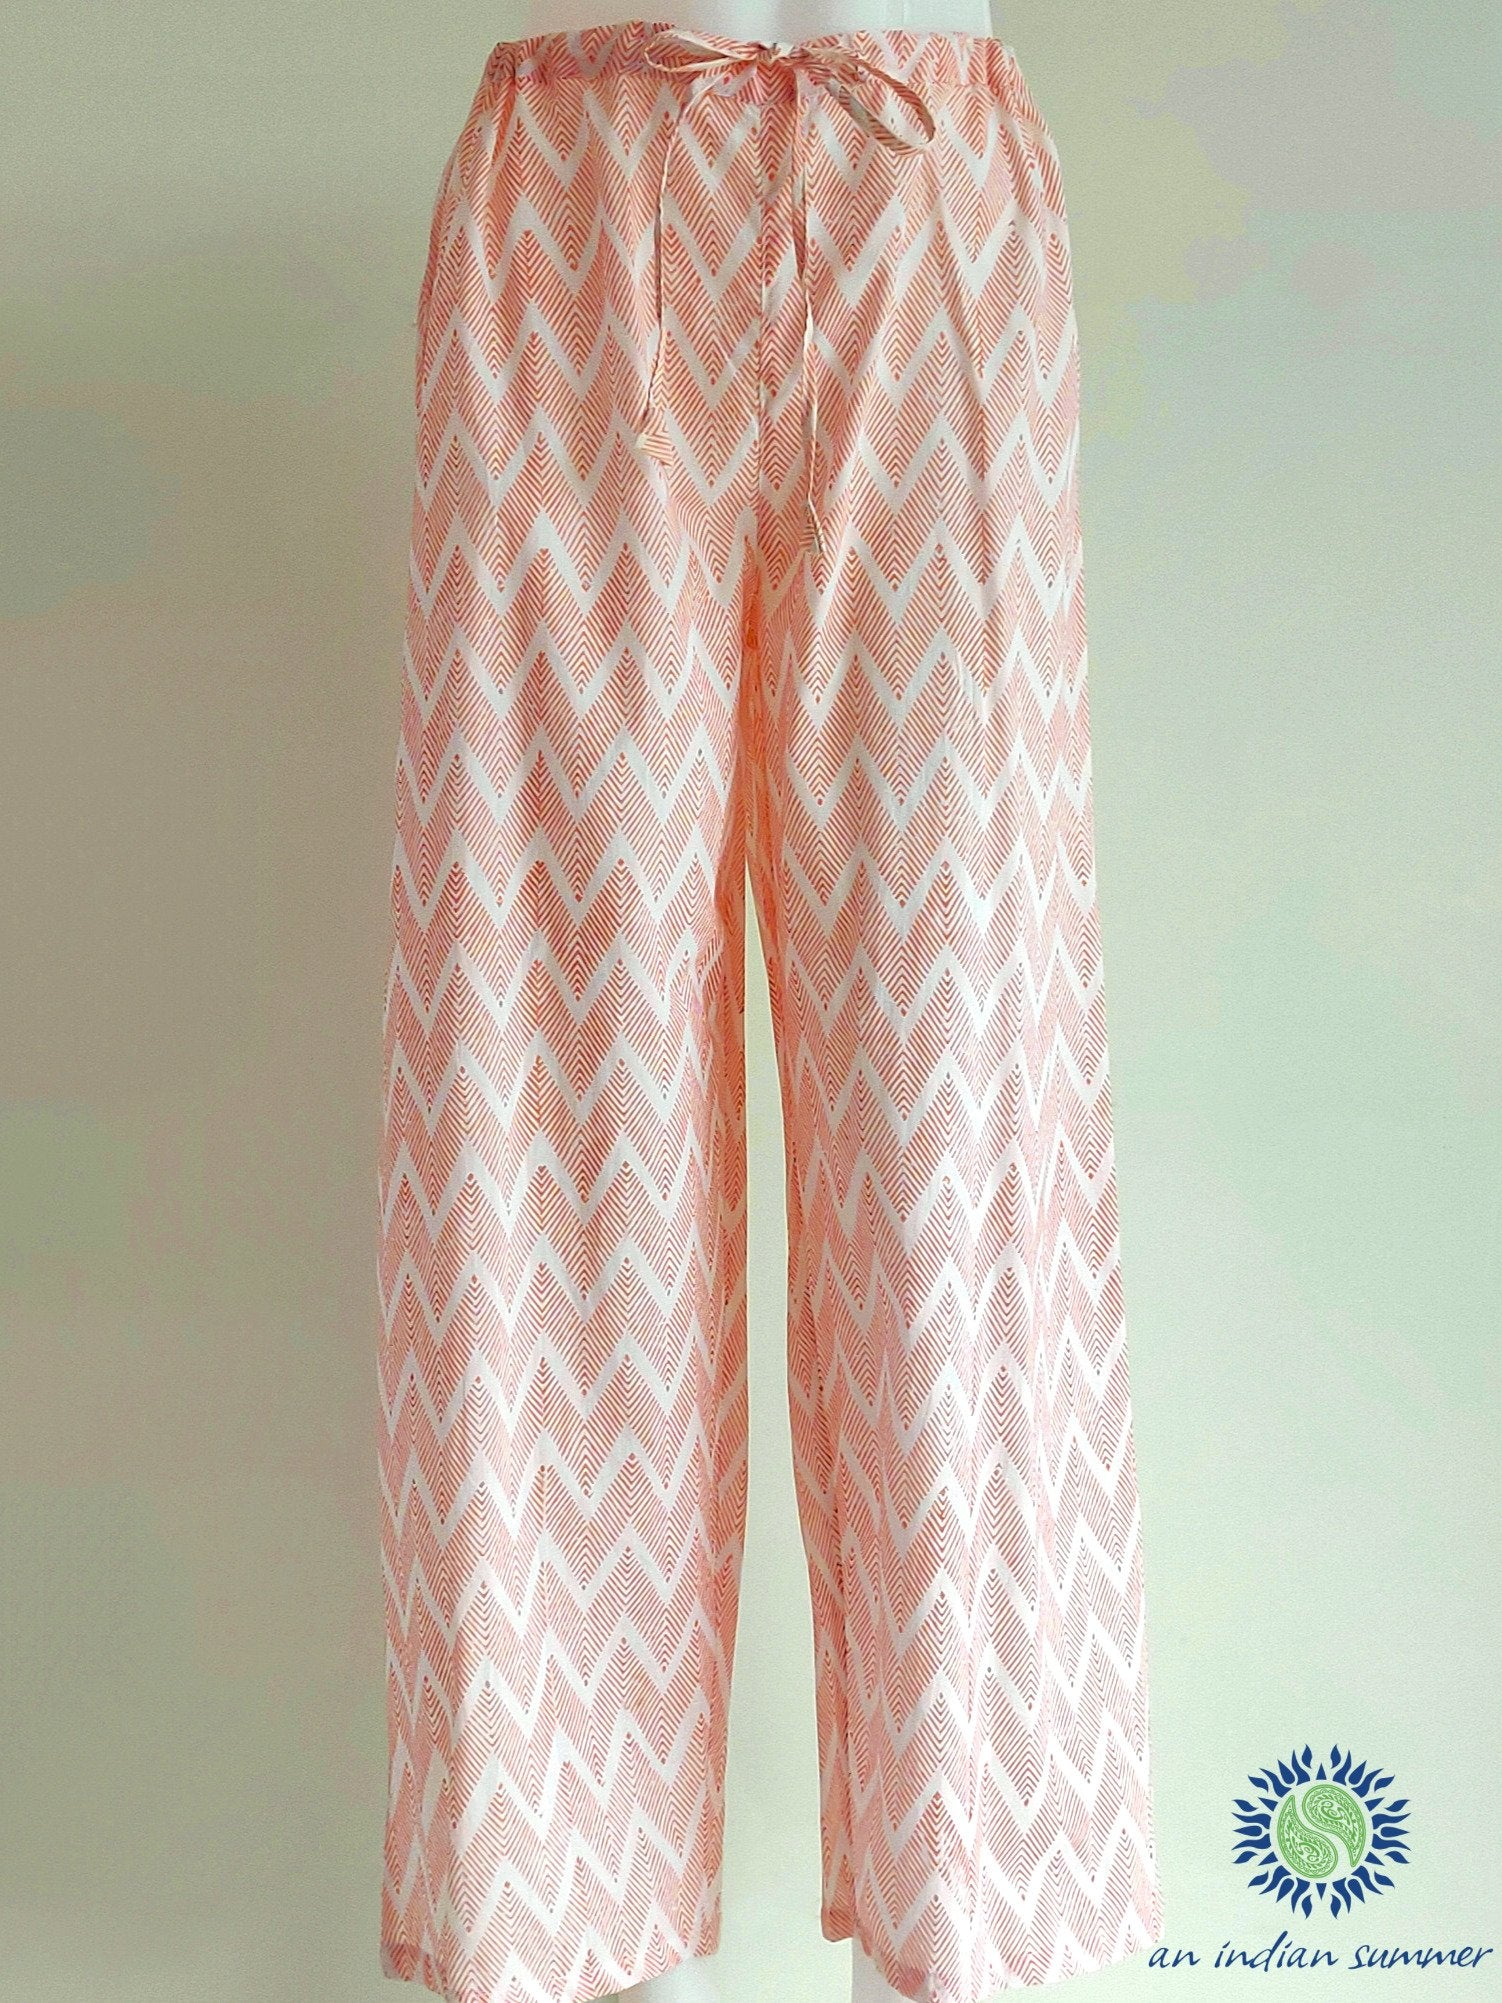 Coral Chevron Trousers | Hand Block Printed | Soft Cotton Voile | An Indian Summer